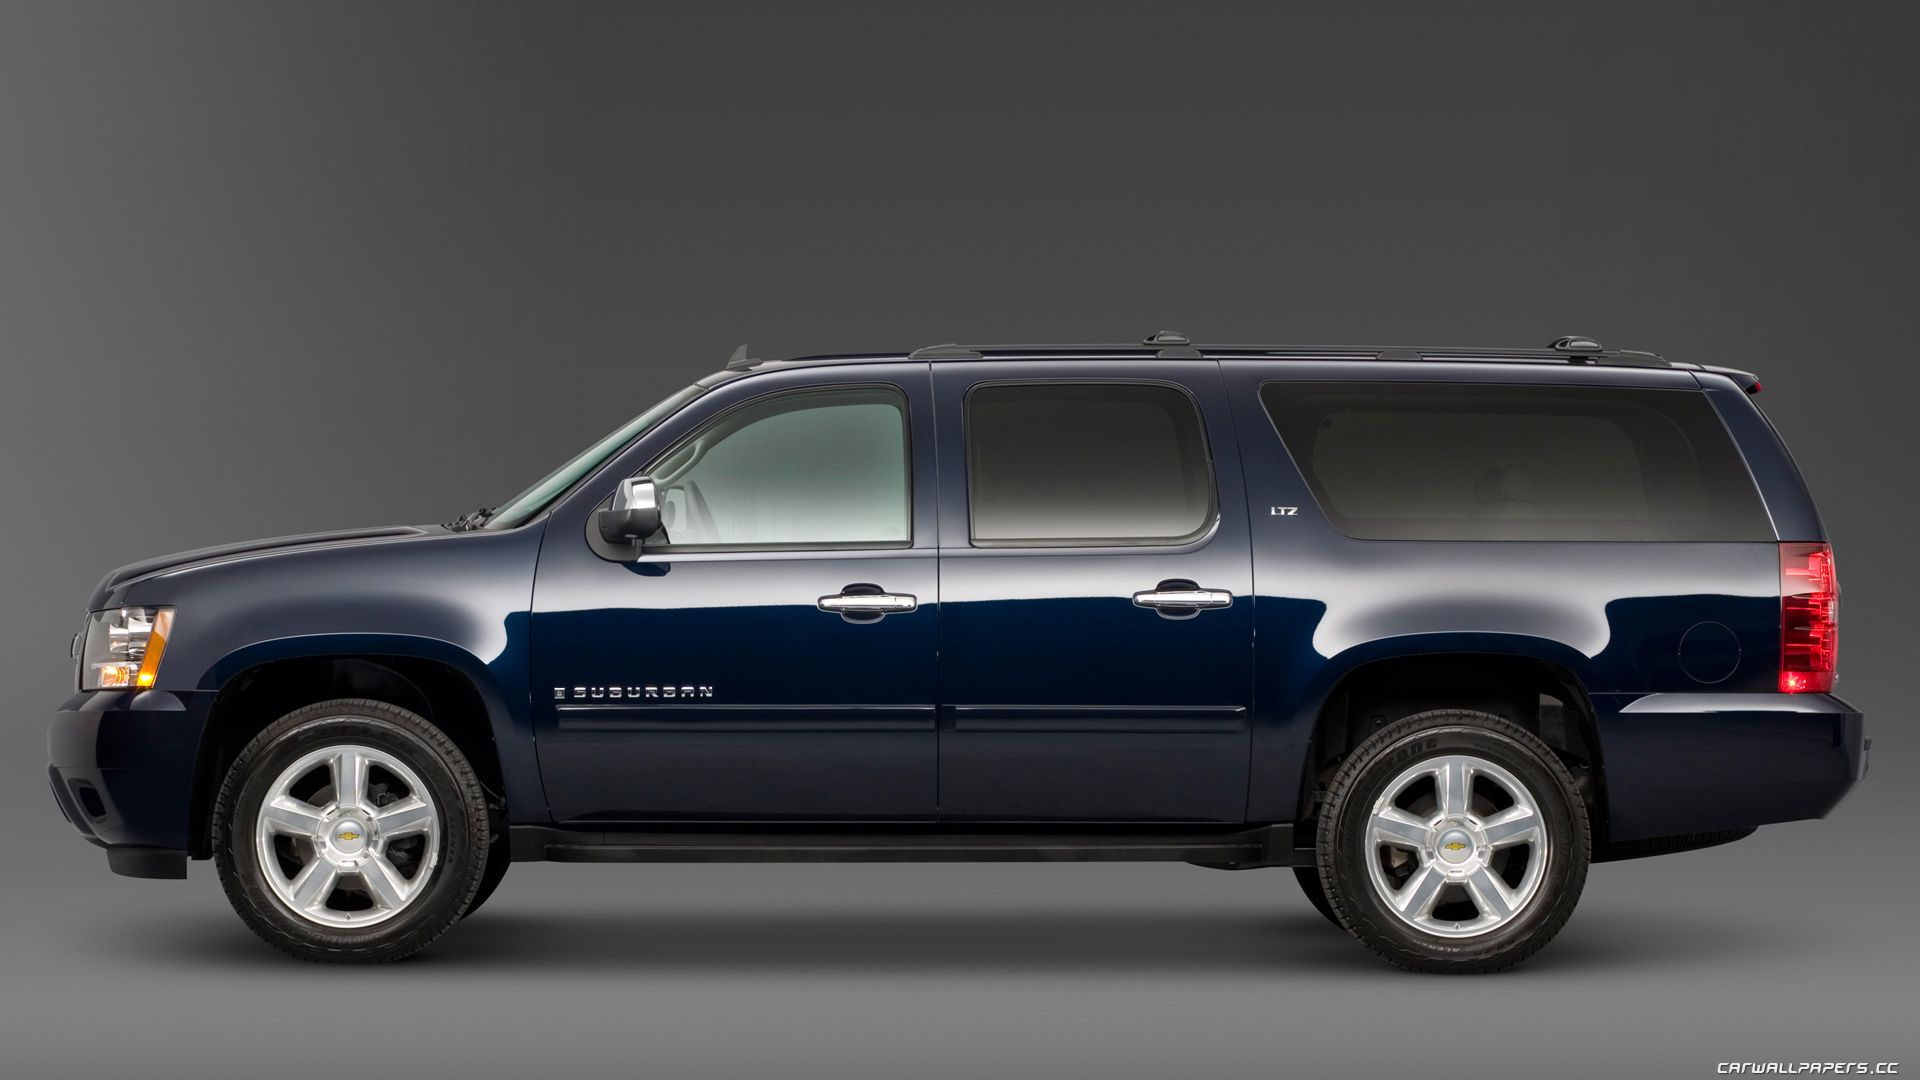 Cool Awesome Chevy Suburban Mpg